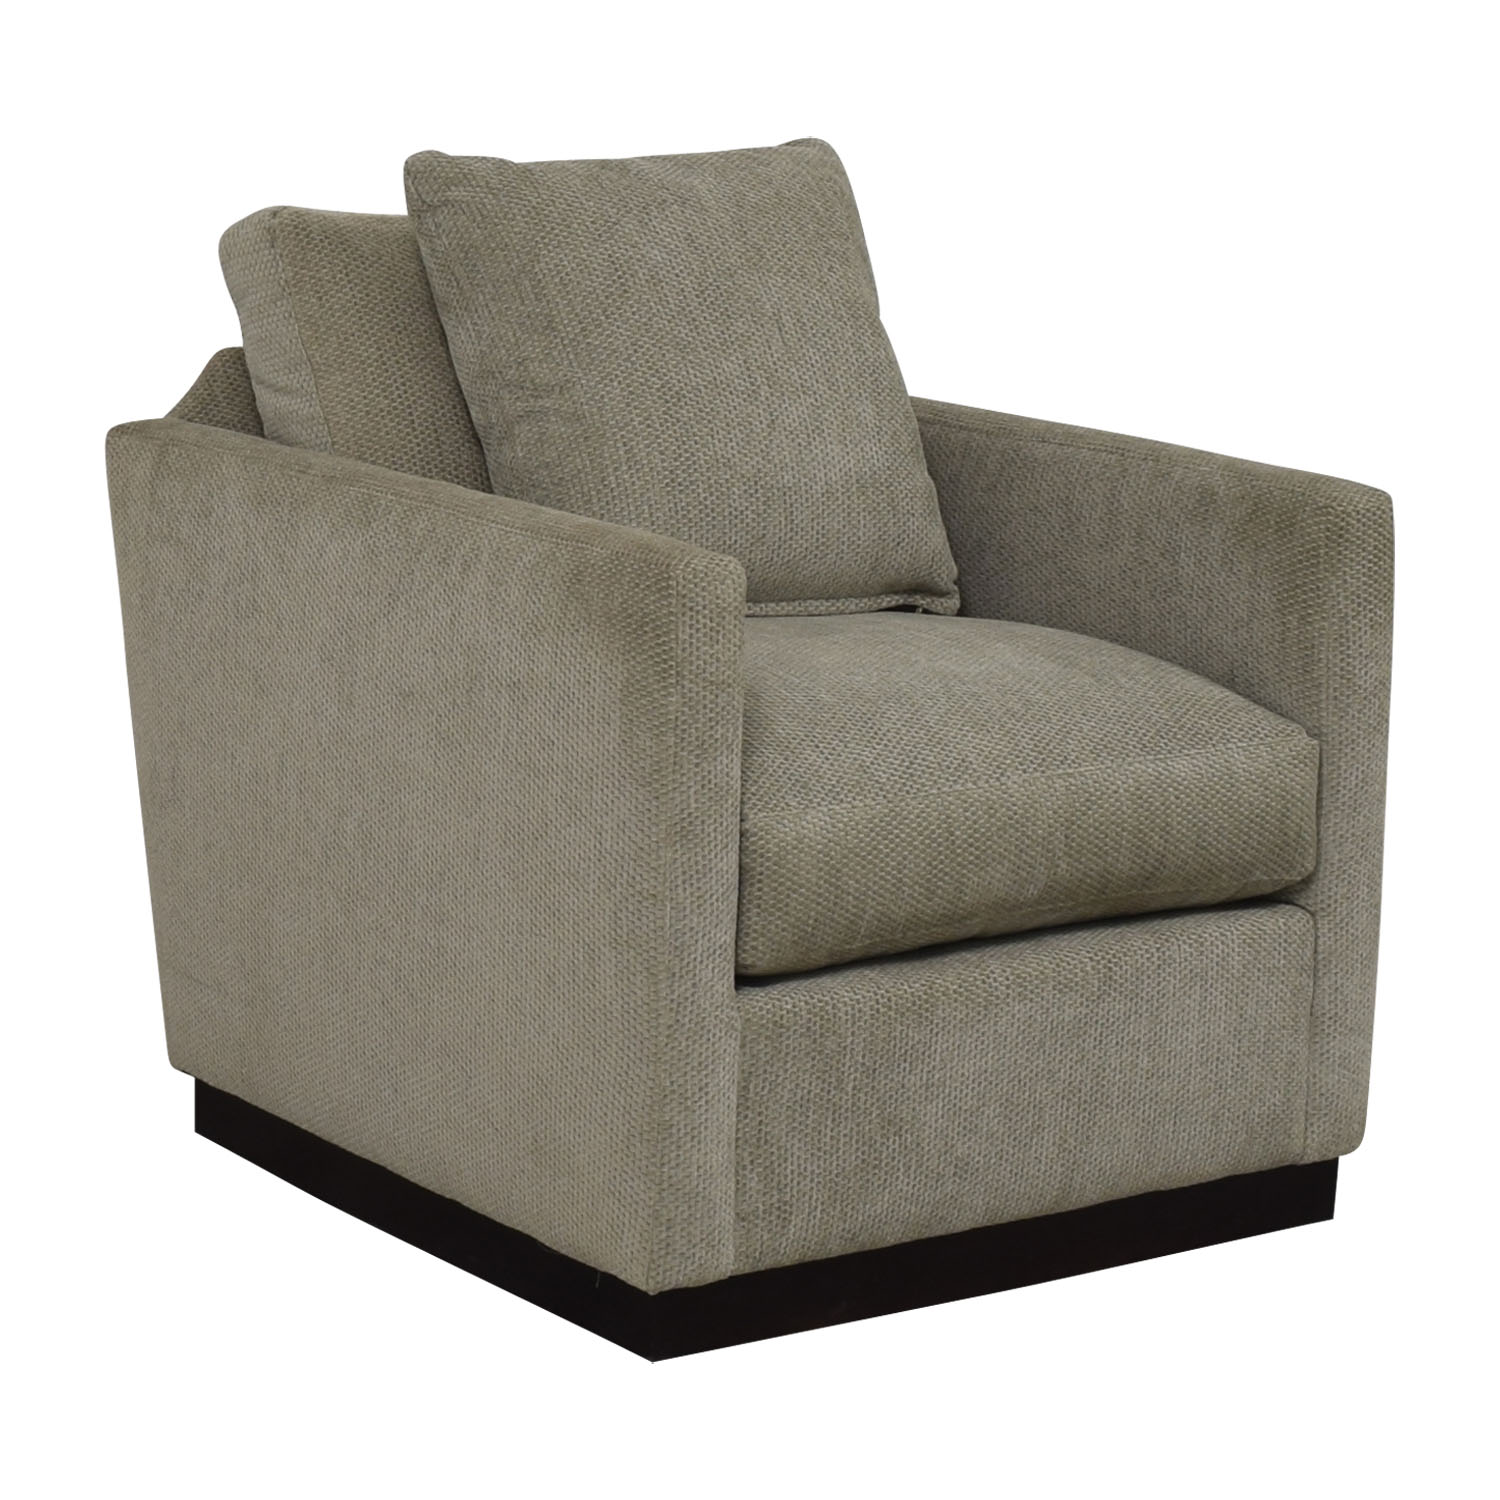 buy Robin Bruce Allie Swivel Accent Chair Robin Bruce Chairs